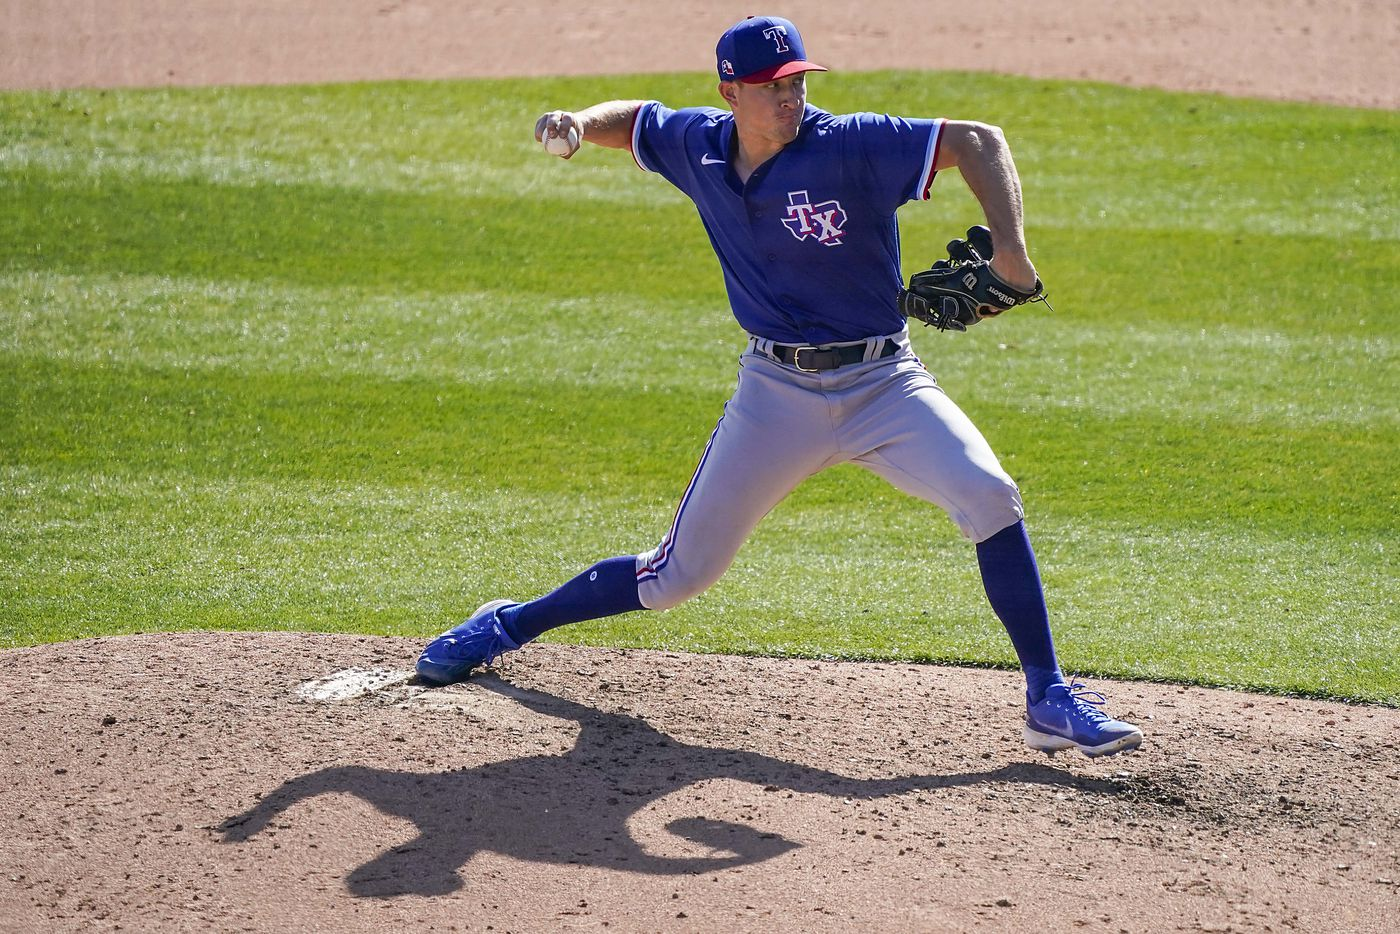 Texas Rangers pitcher Brett de Geus delivers during the sixth inning of a spring training game against the Chicago White Sox at Camelback Ranch on Tuesday, March 2, 2021, in Phoenix, Ariz.